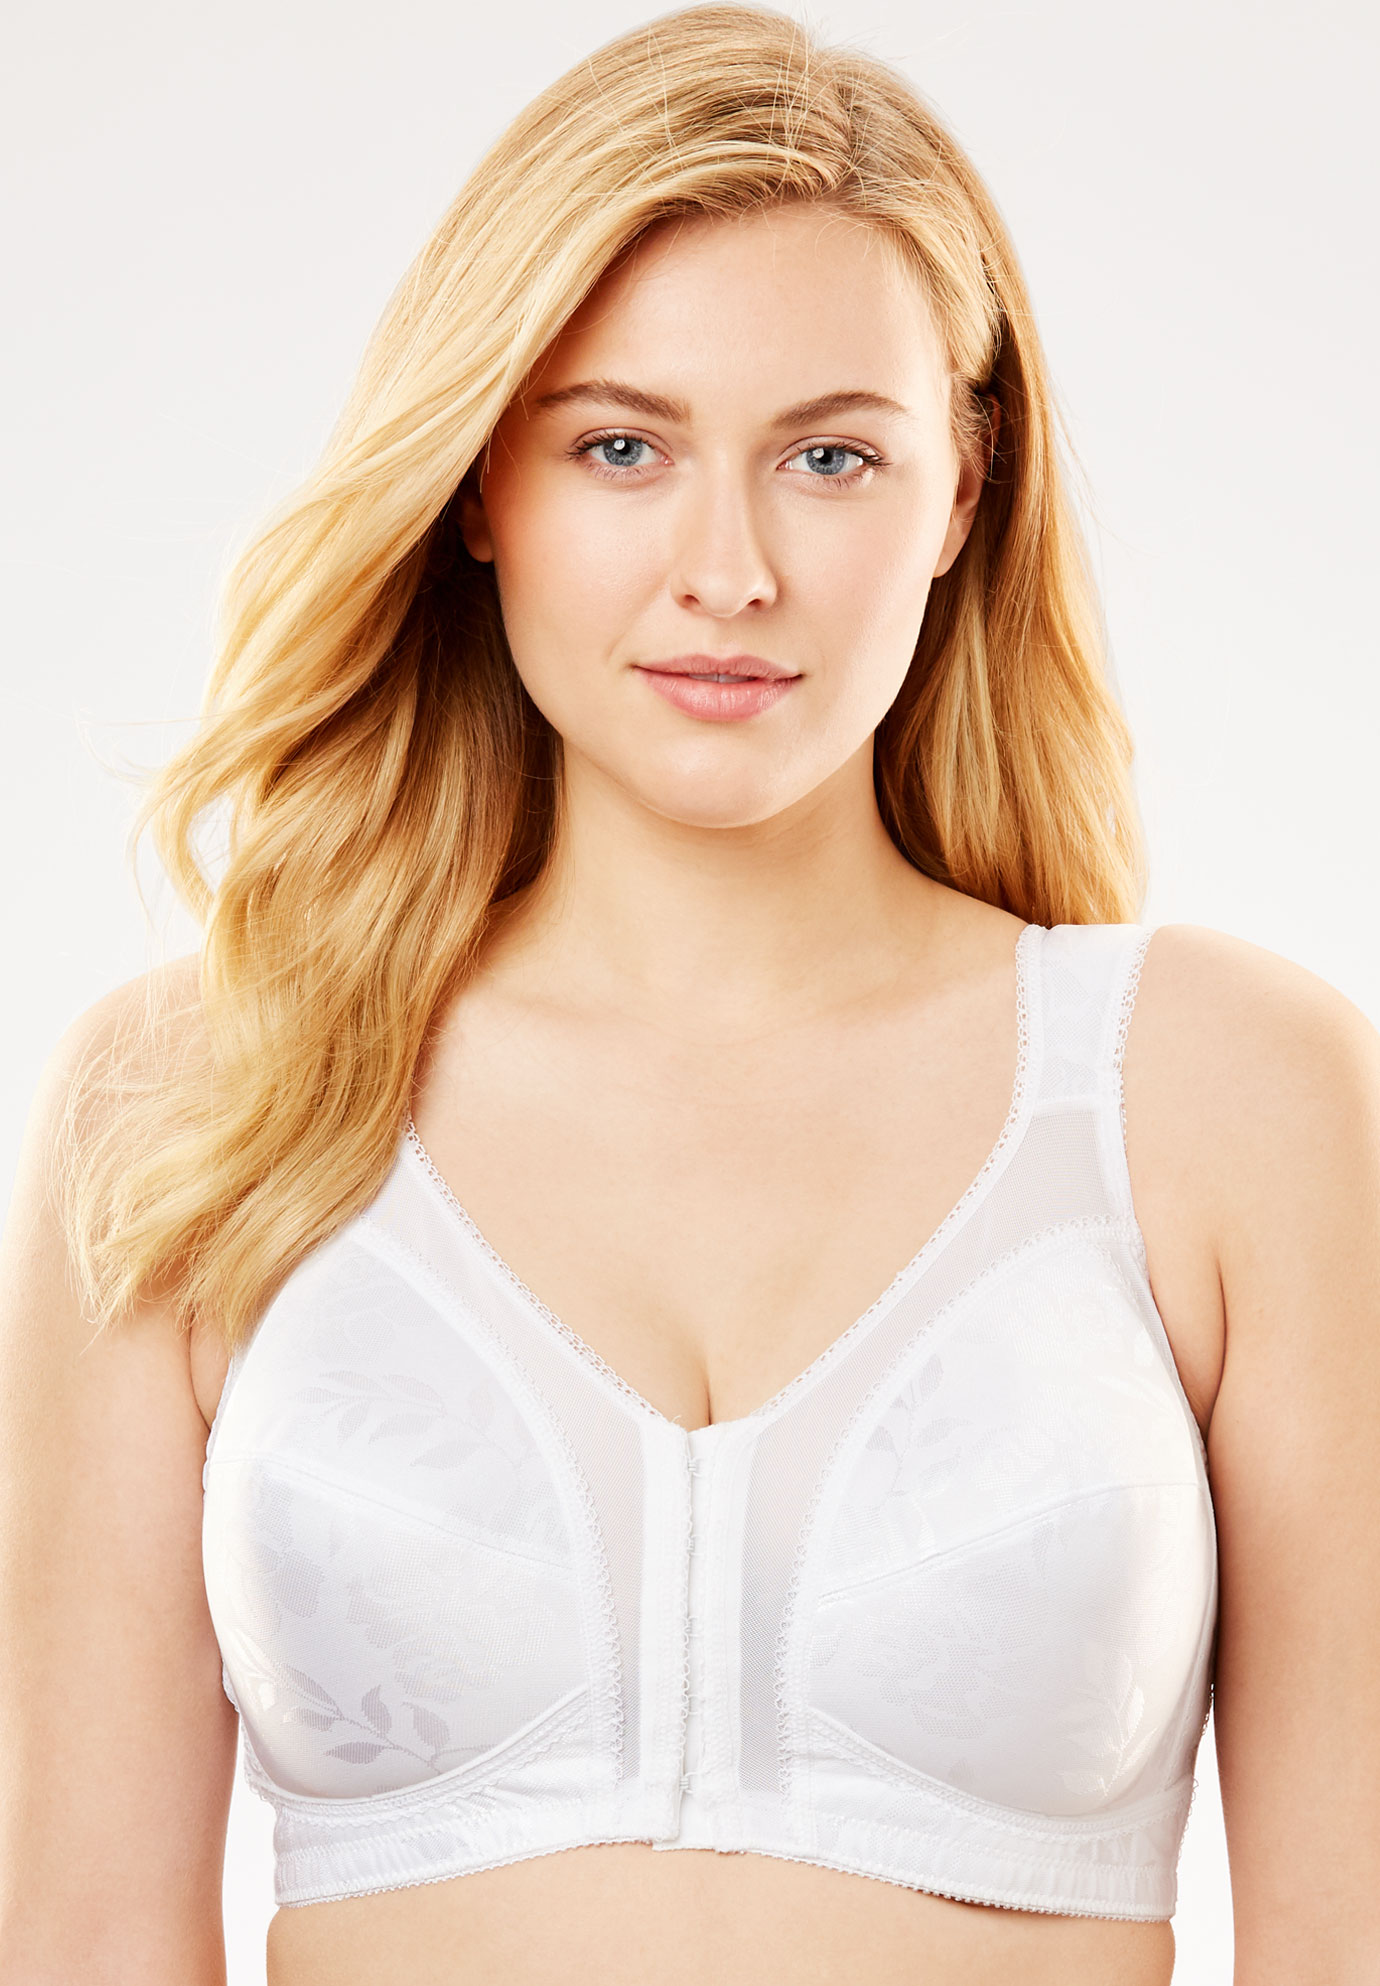 bbe3a009e4c Playtex® 18 Hour Front-Close Wireless Bra with Flex Back  4695